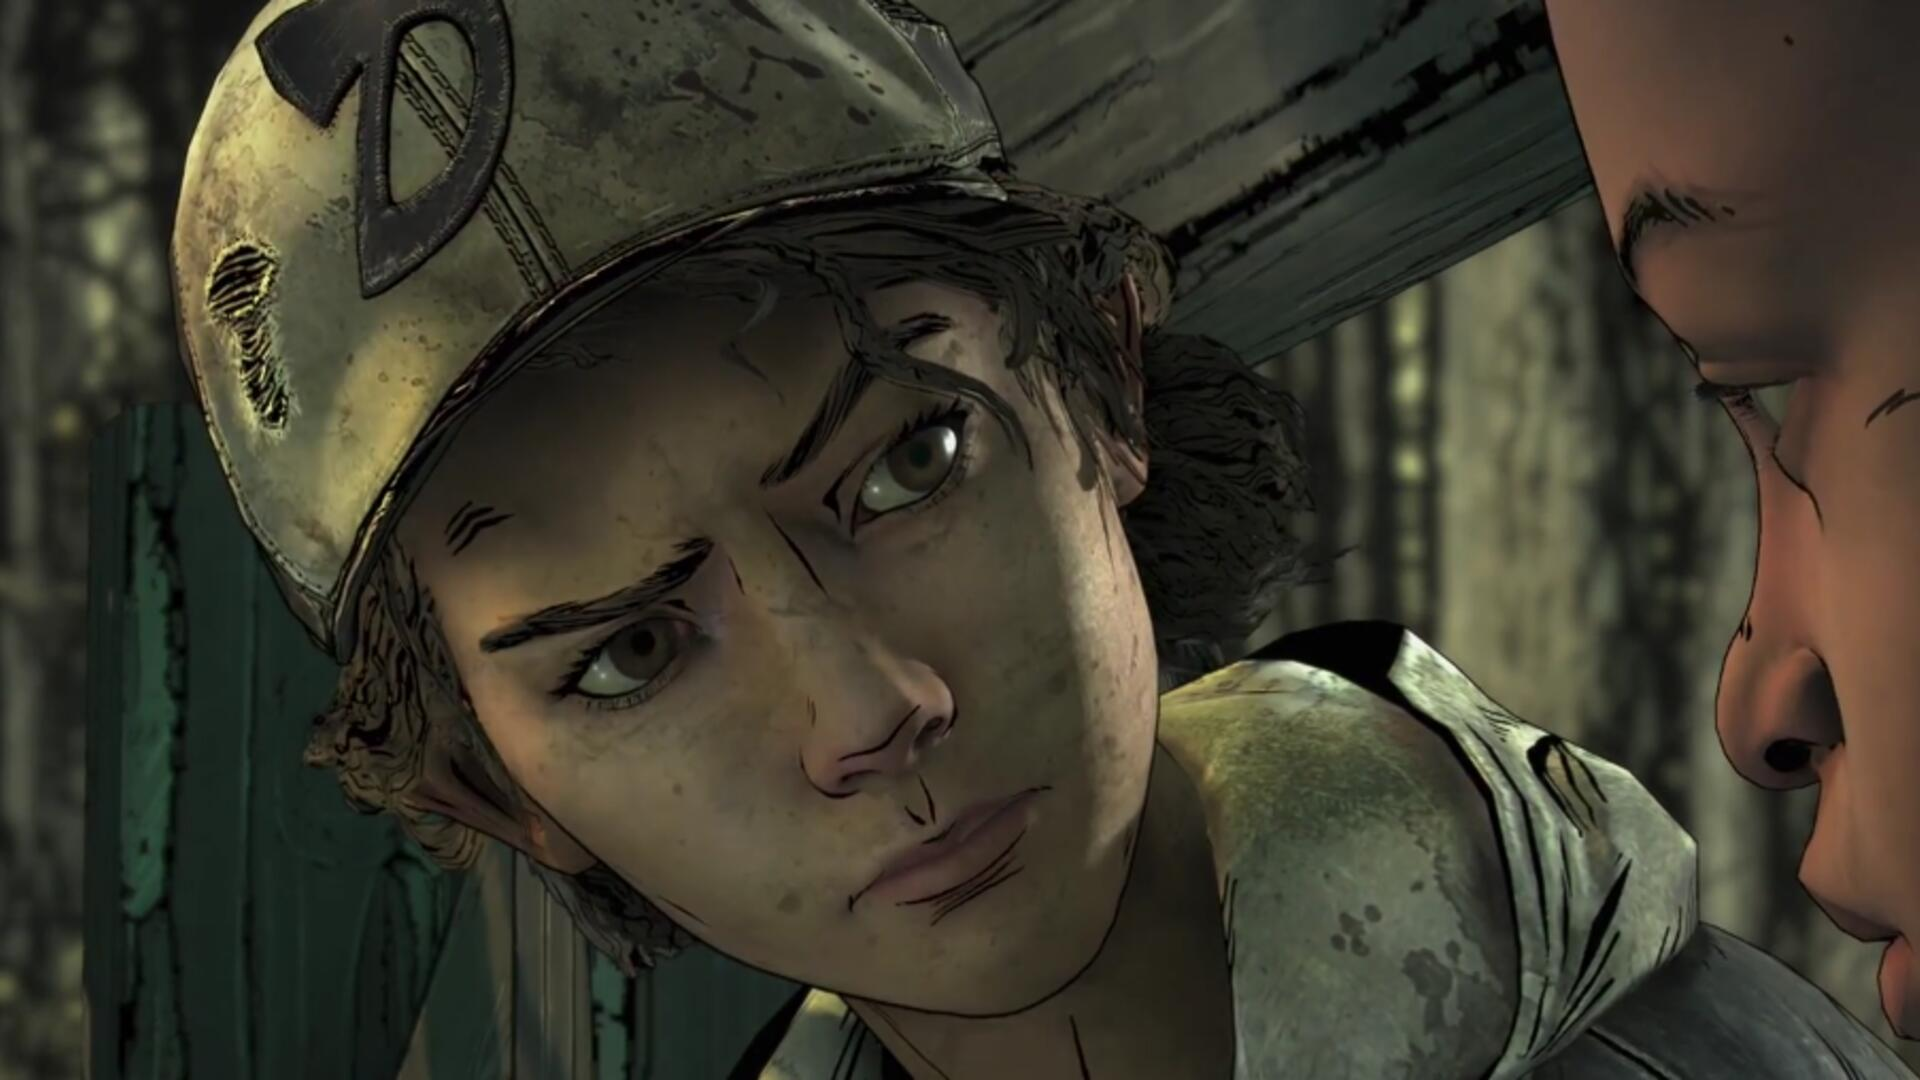 Telltale Games Pulls The Walking Dead: The Final Season From Digital Stores as Series Future Still Unclear